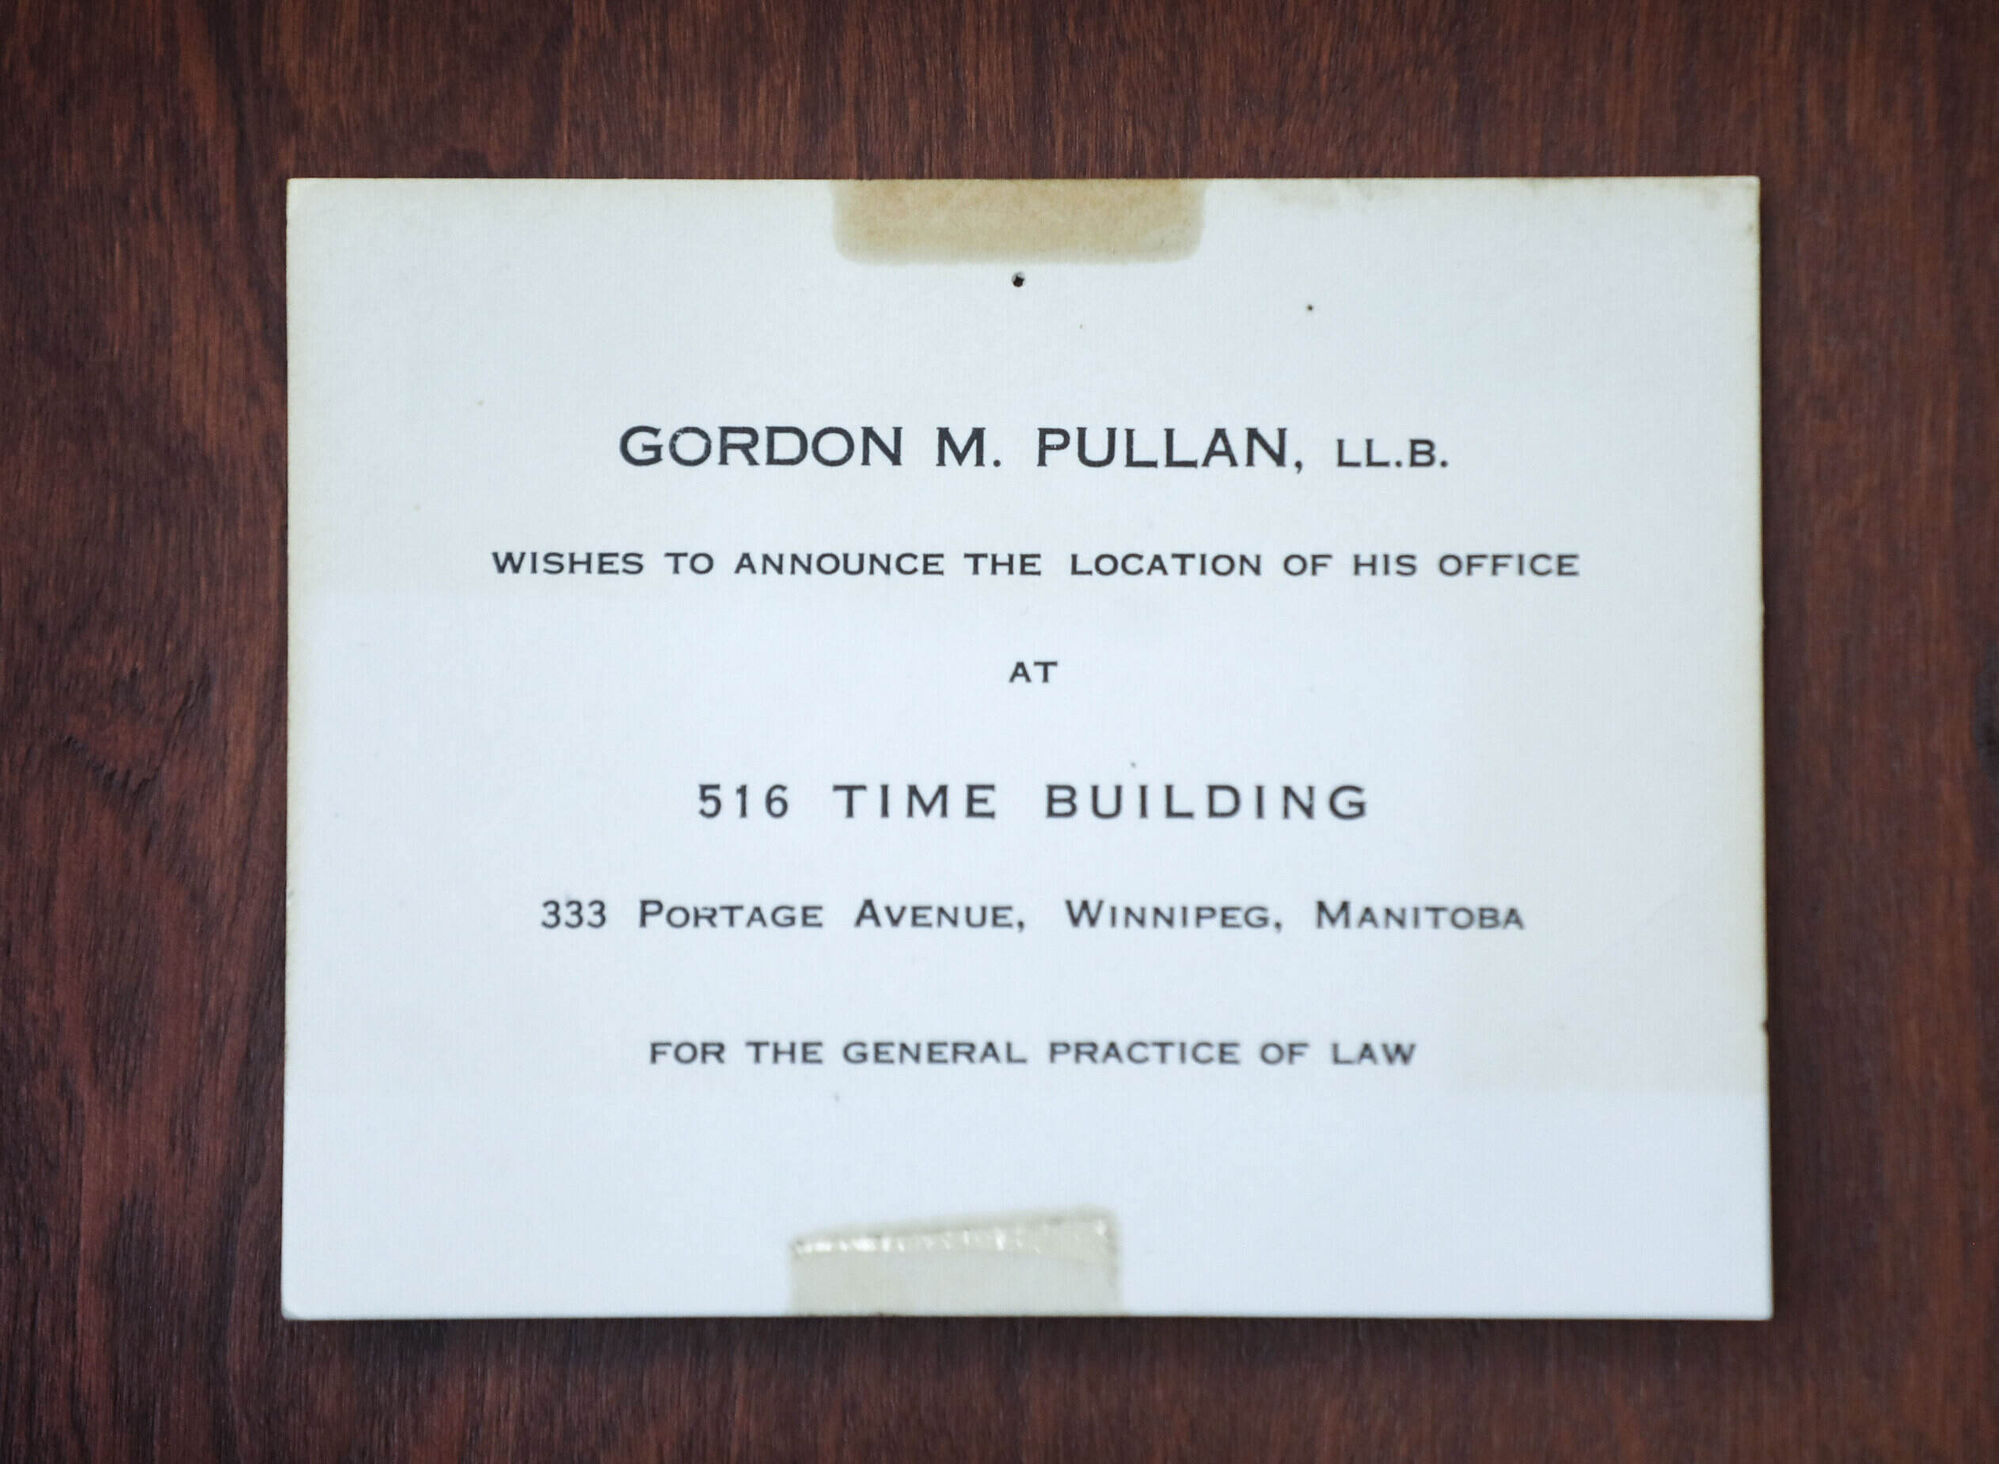 RUTH BONNEVILLE / WINNIPEG FREE PRESS <p/> Photo of the first printed sign that was on Pullan's office door when he opened his first office in late 1950's.